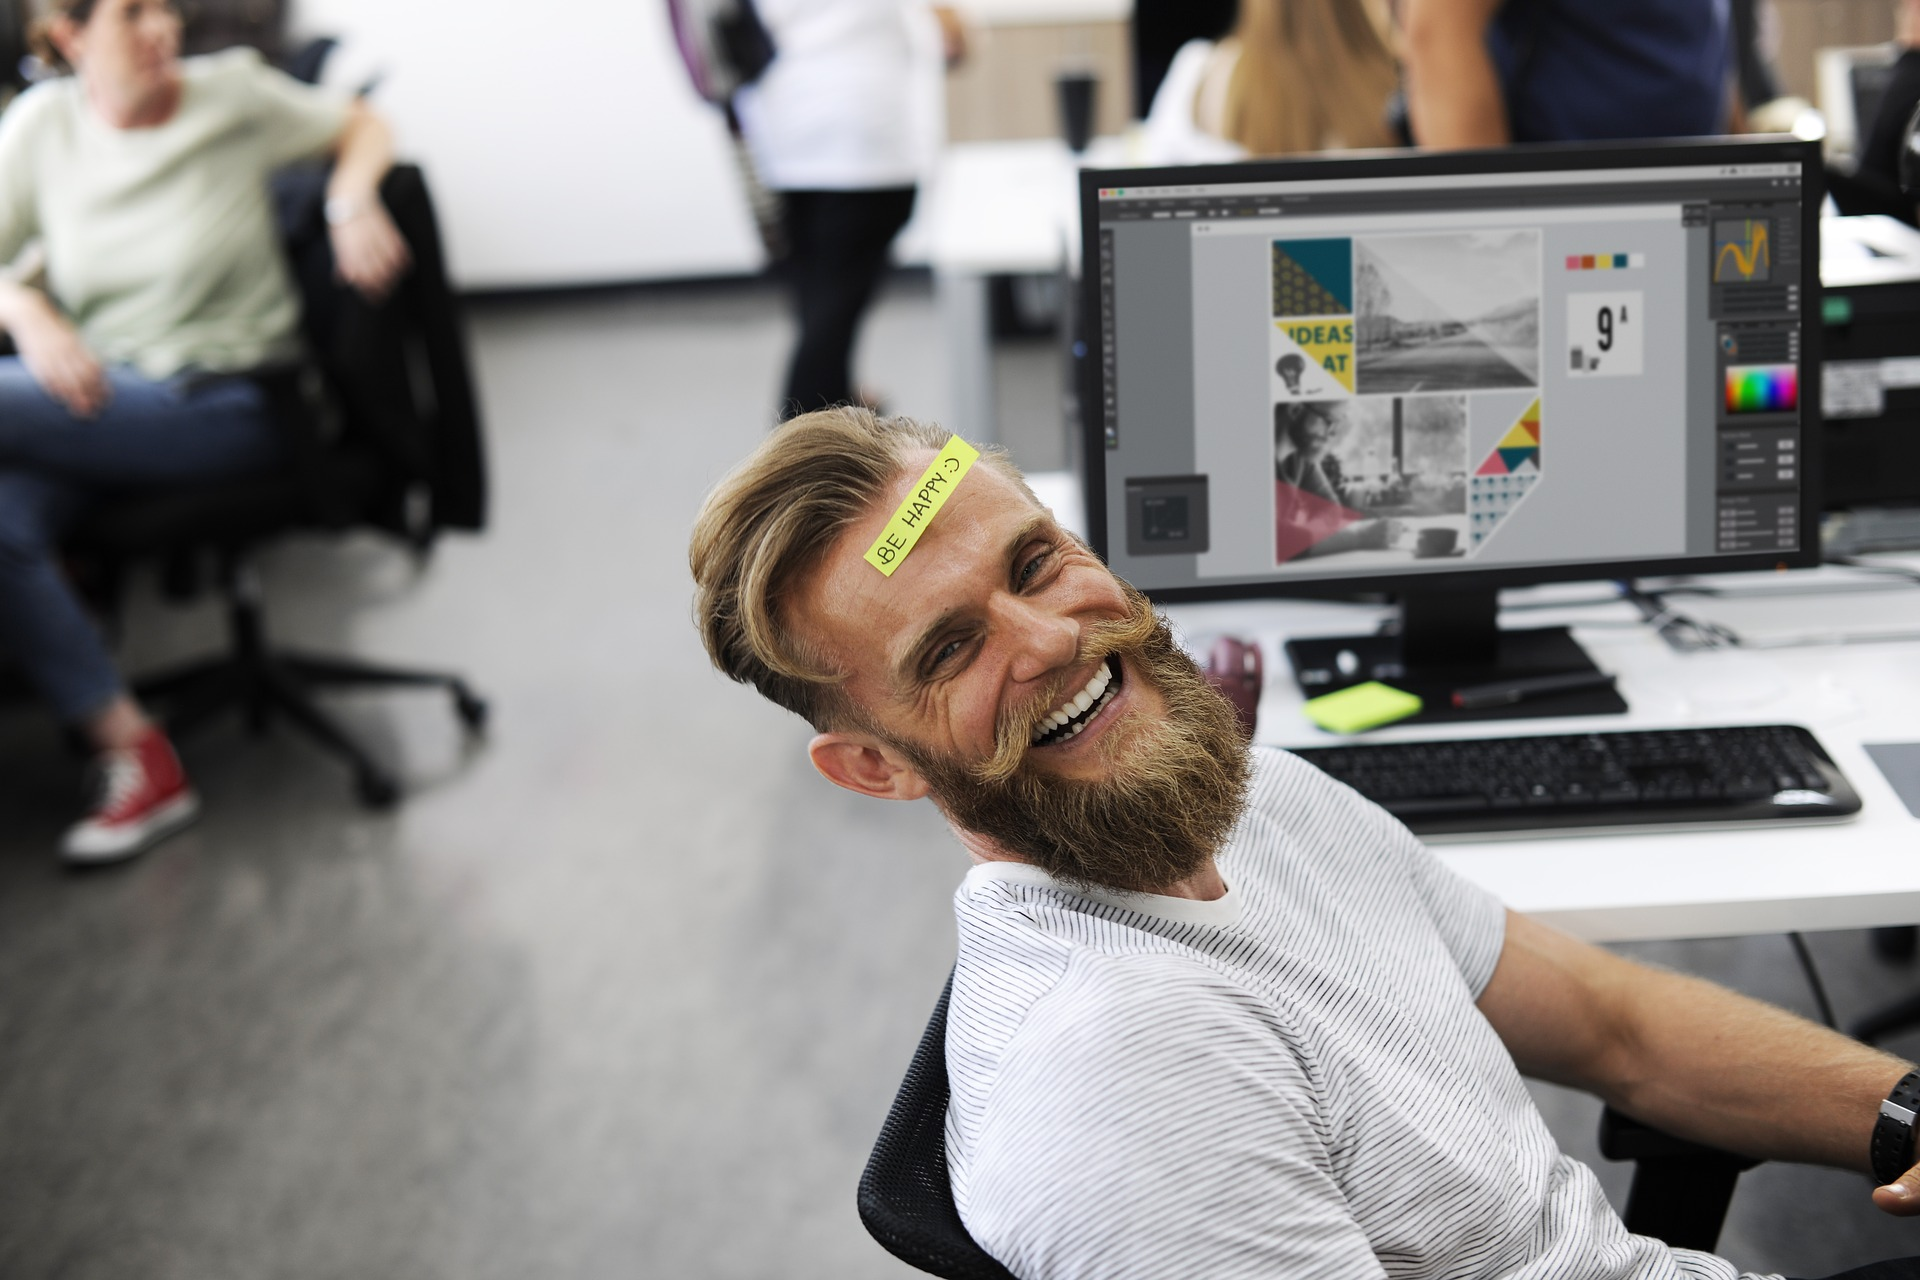 3 Laws of Fun for a Healthy Workplace Culture